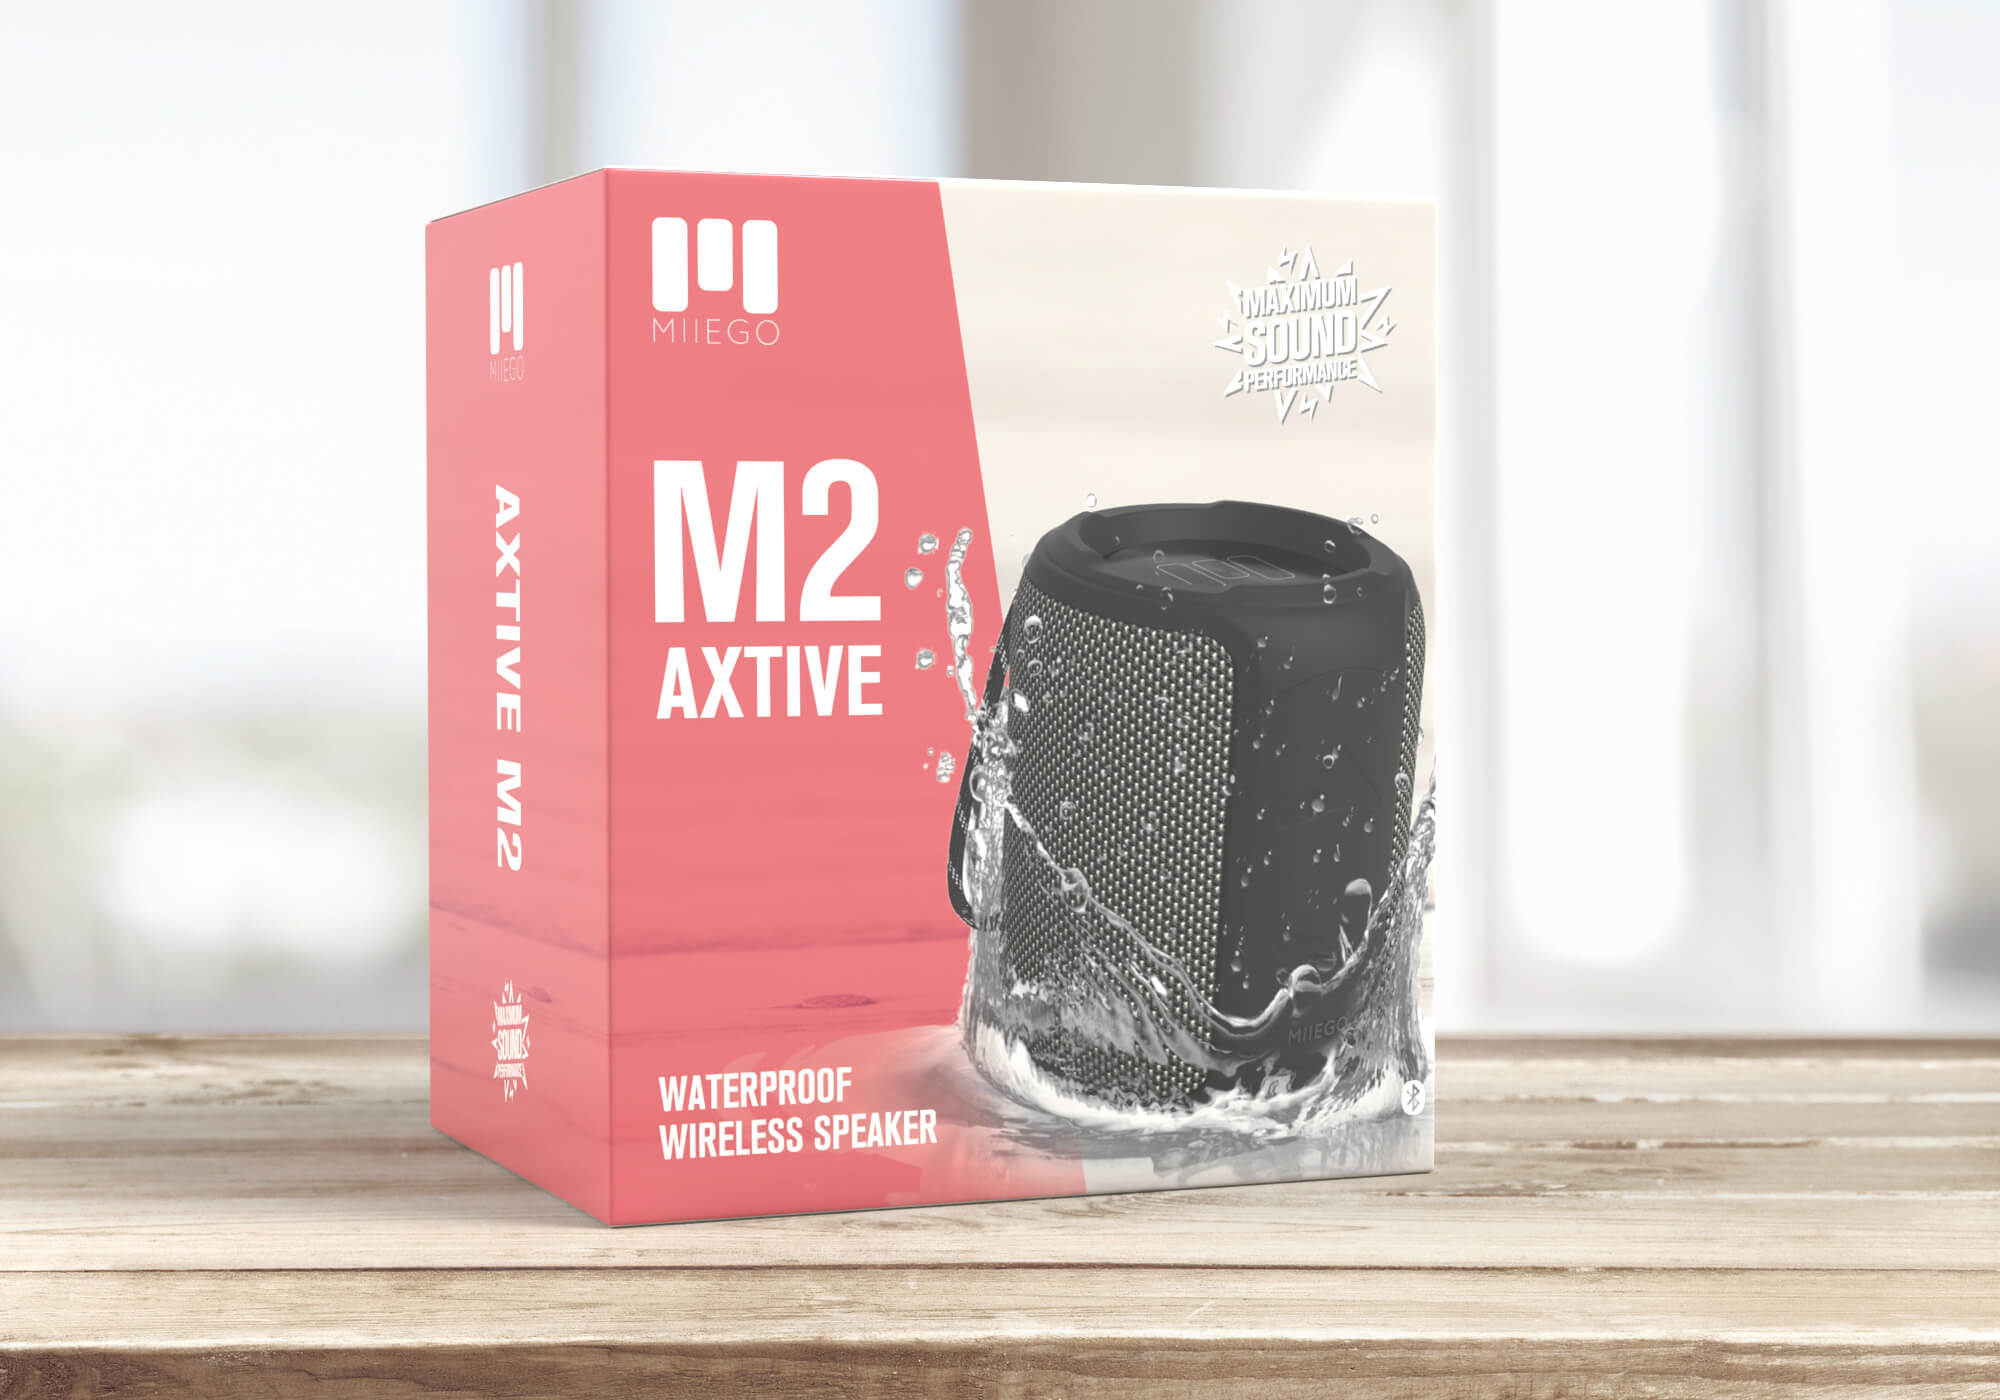 M2_AXTIVE_packaging_left